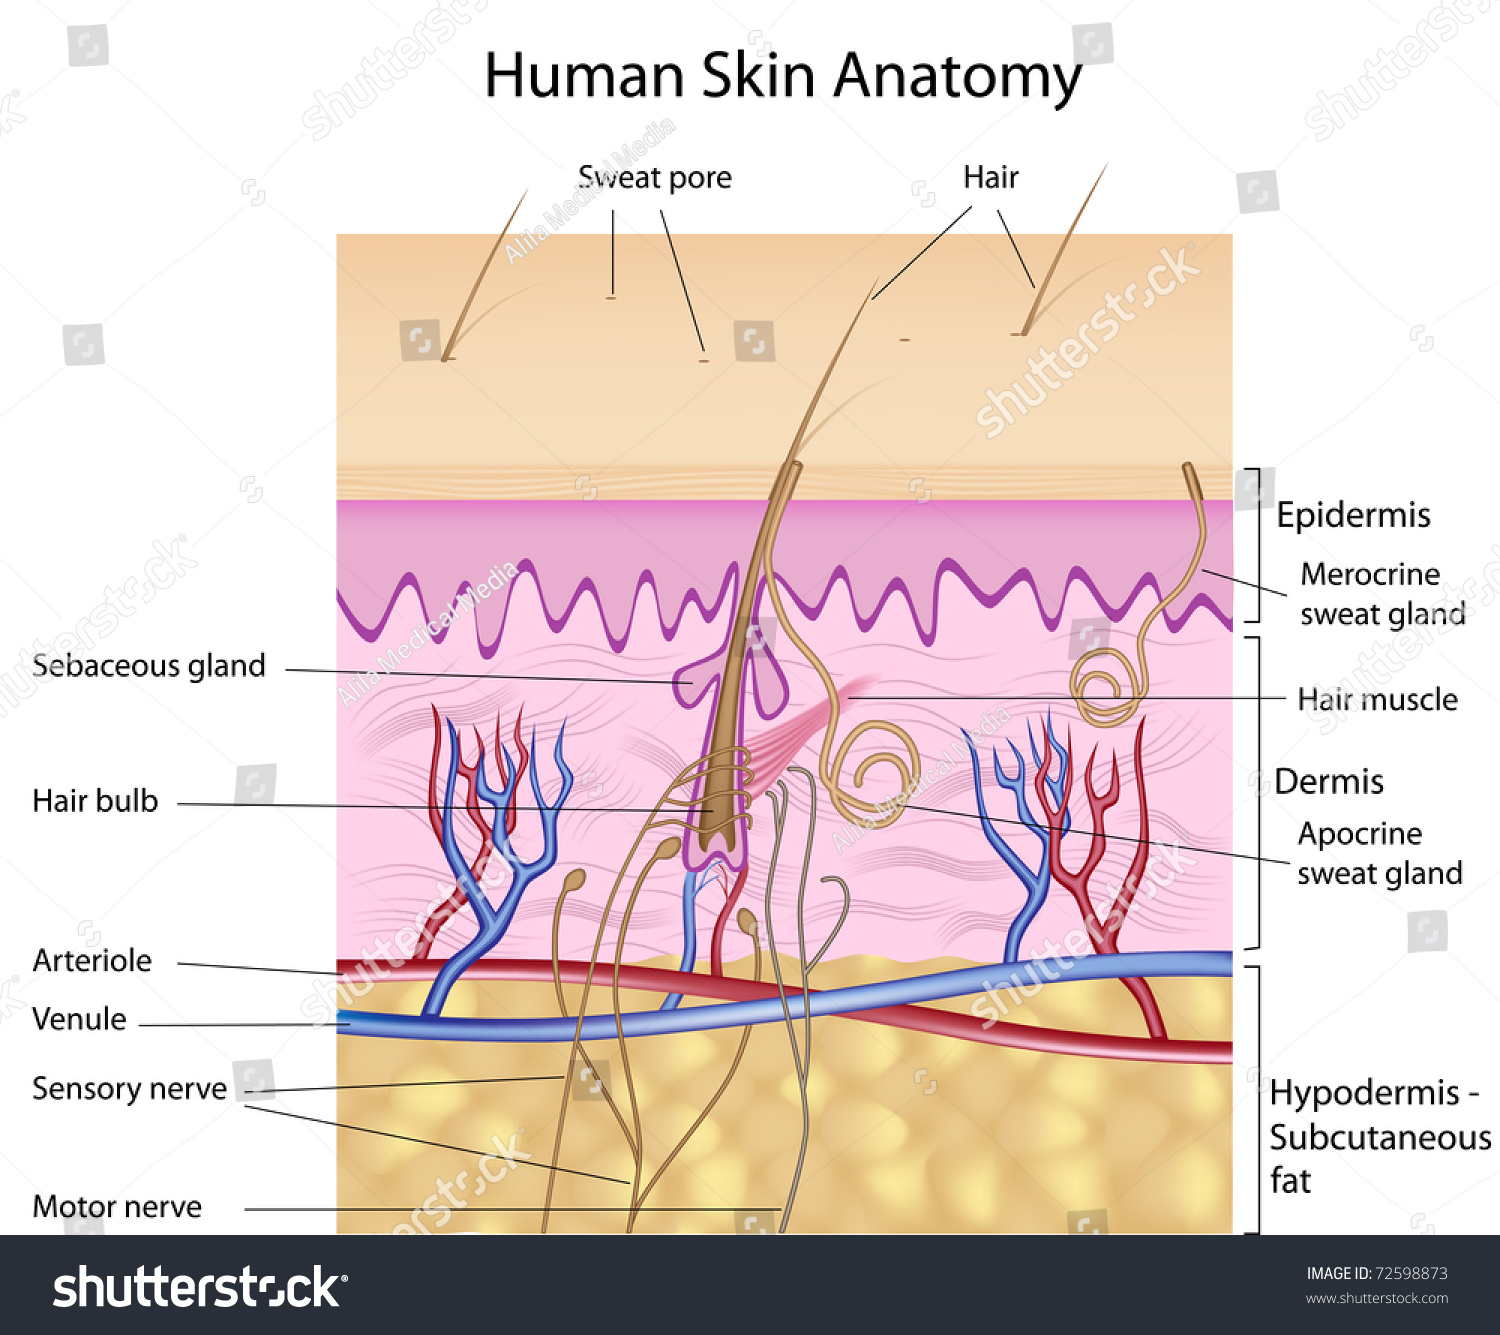 Human Skin Anatomy Detailed Accurate Labeled Stock Illustration ...